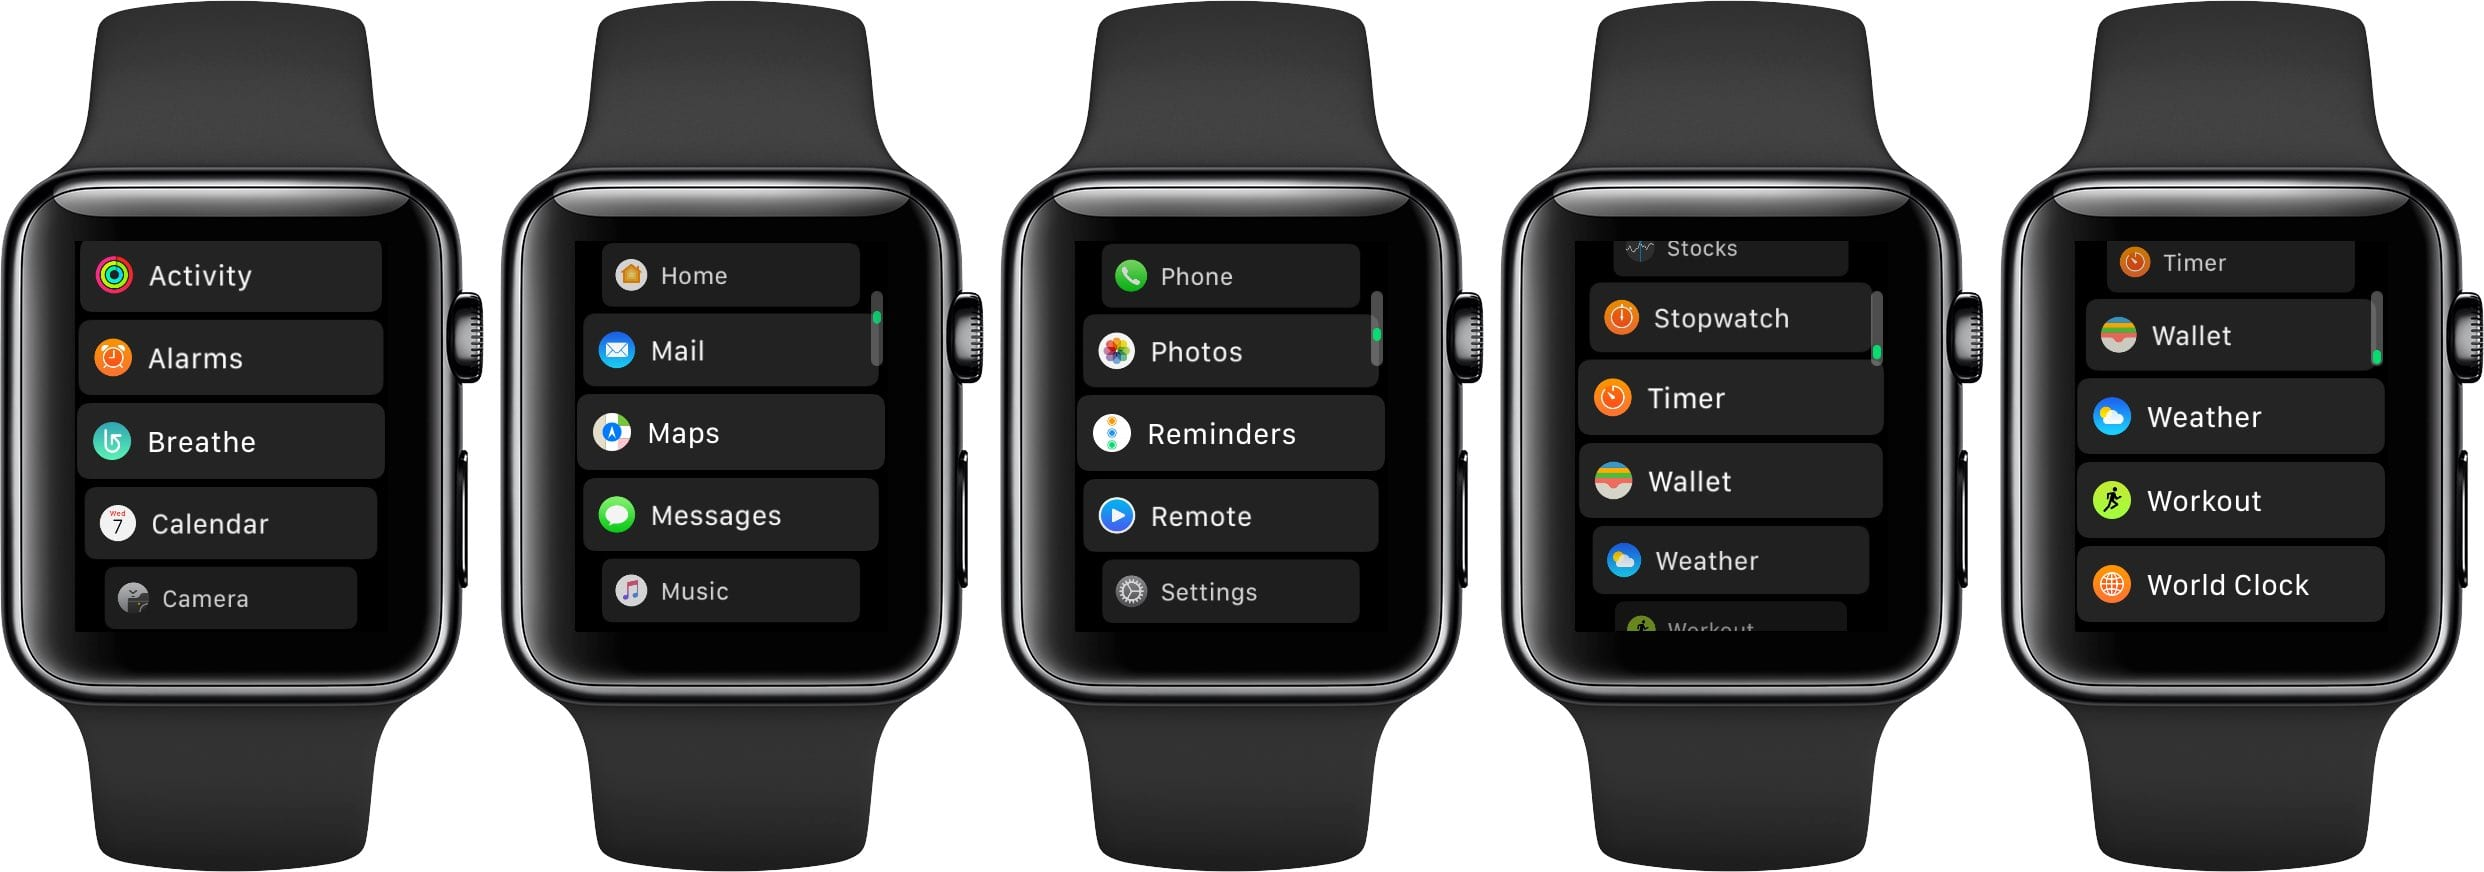 watchOS 4 Home Screen List View